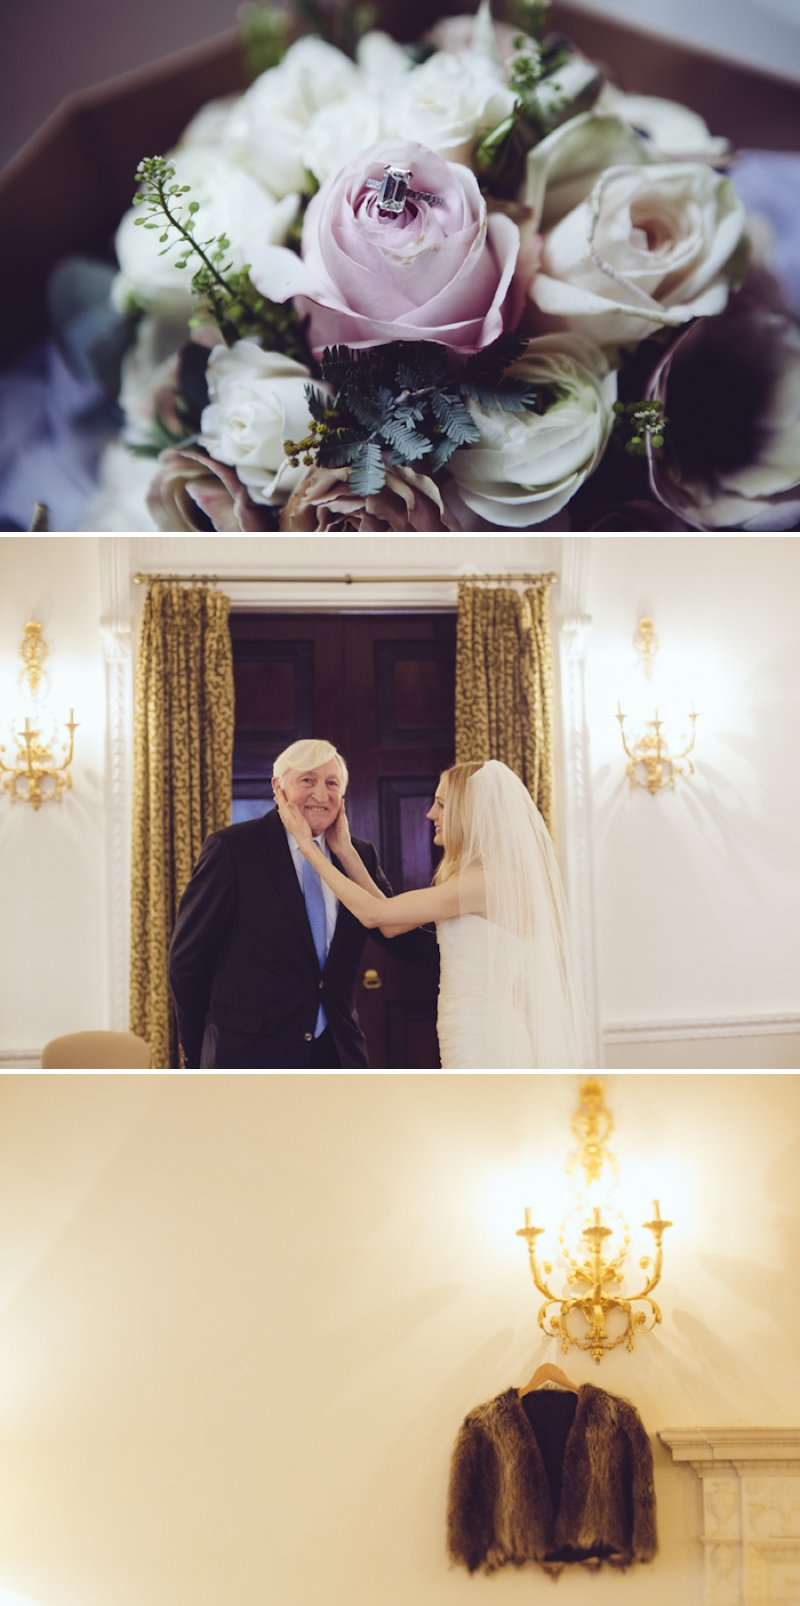 Sophisticated London Wedding At Chandos House With Reception And Dinner At Corrigan's Mayfair With Bride In Peter Langner Gown With Brian Atwood Shoes And Groom In Bespoke Thom Sweeney Suit With Flowers By Scarlet And Violet 2